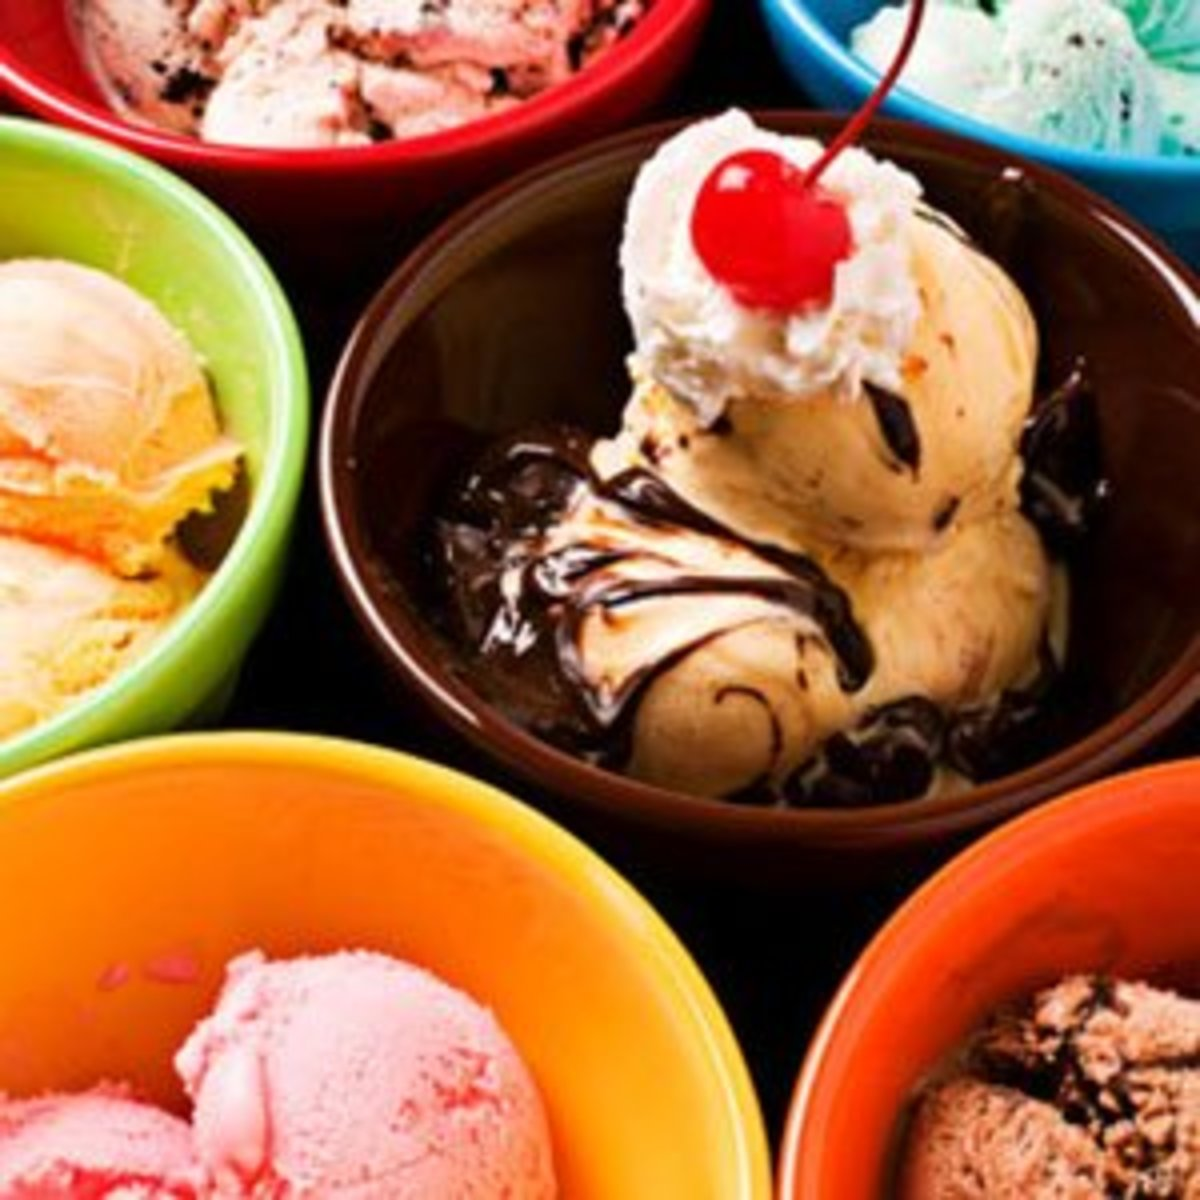 What is Your Ice Cream Personality? Take the Ice  Cream Personality Test Below!